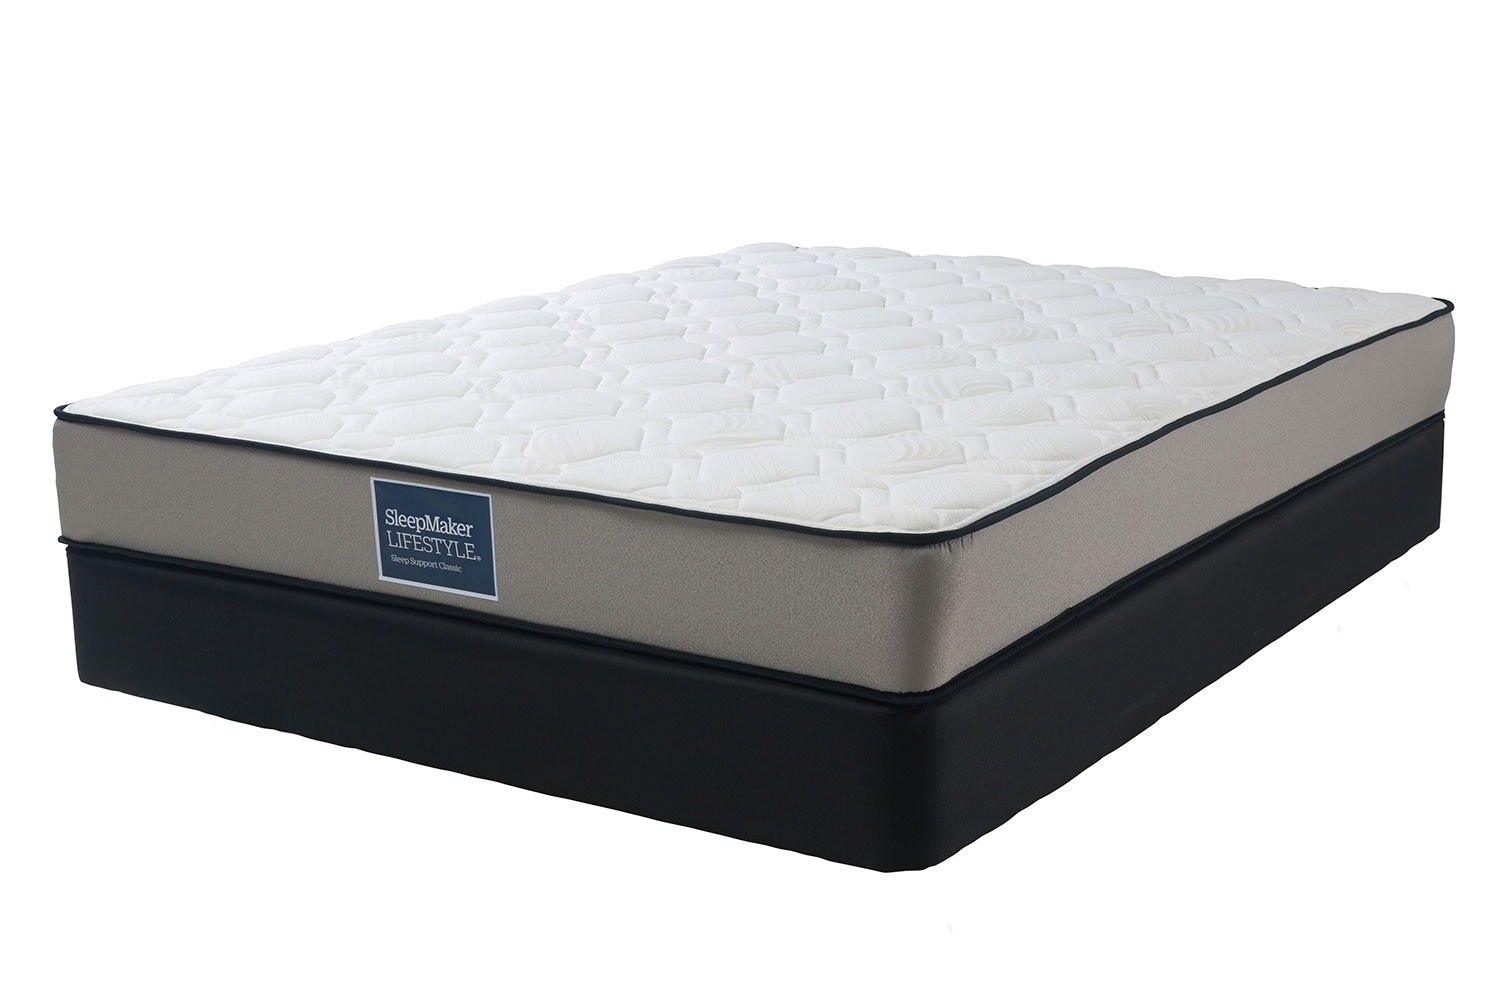 Sleep Support Classic Queen Bed by SleepMaker